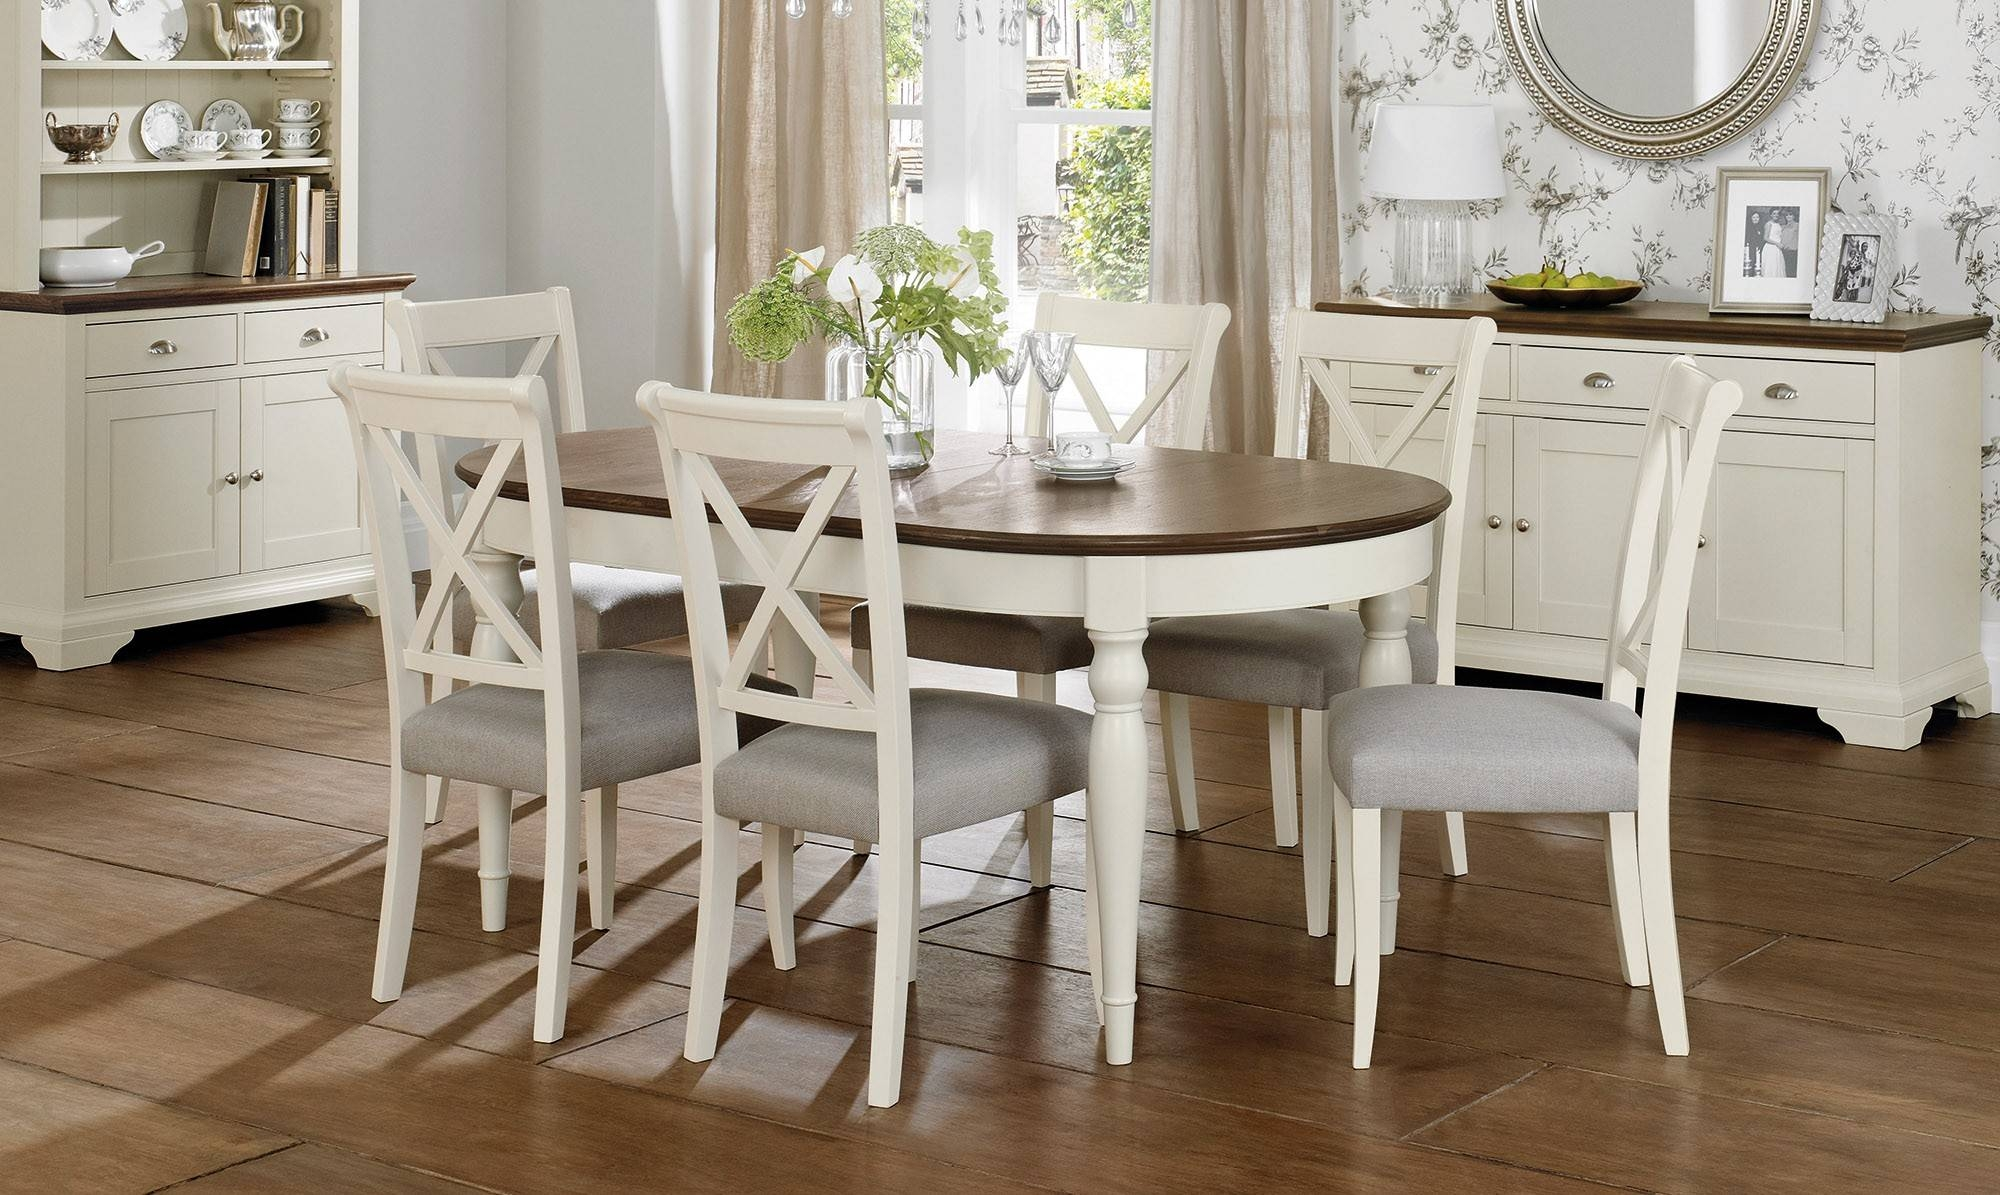 Dining Room: Interesting Extendable Dining Table For Your Dining Within Current Dining Room Table Chairs And Sideboards (View 11 of 15)